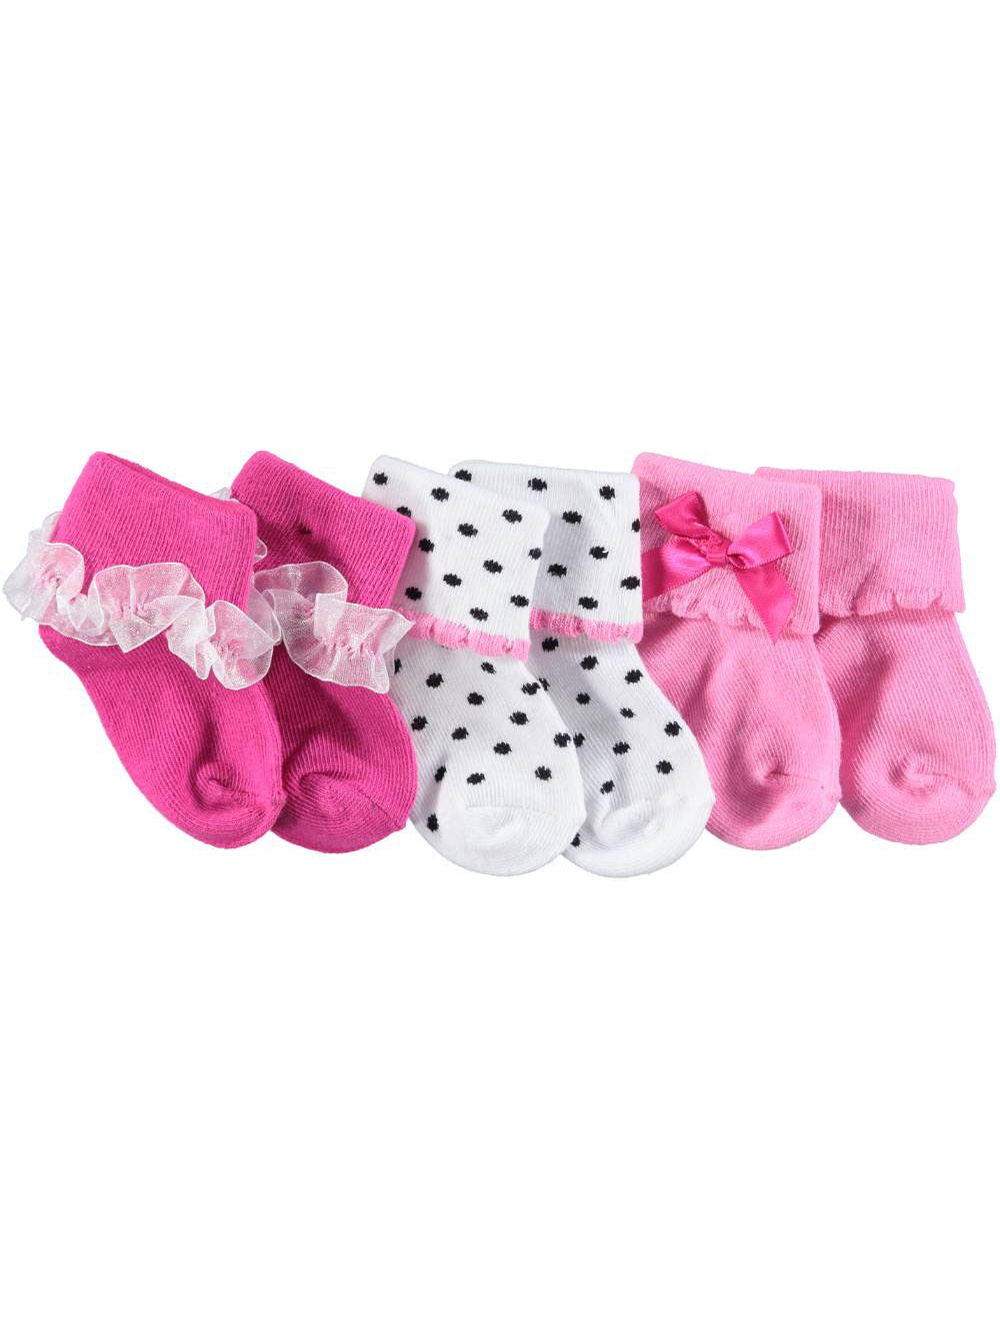 Image of Luvable Friends Baby Girls Dainty Collection 3Pack Socks  pink 6  12 months